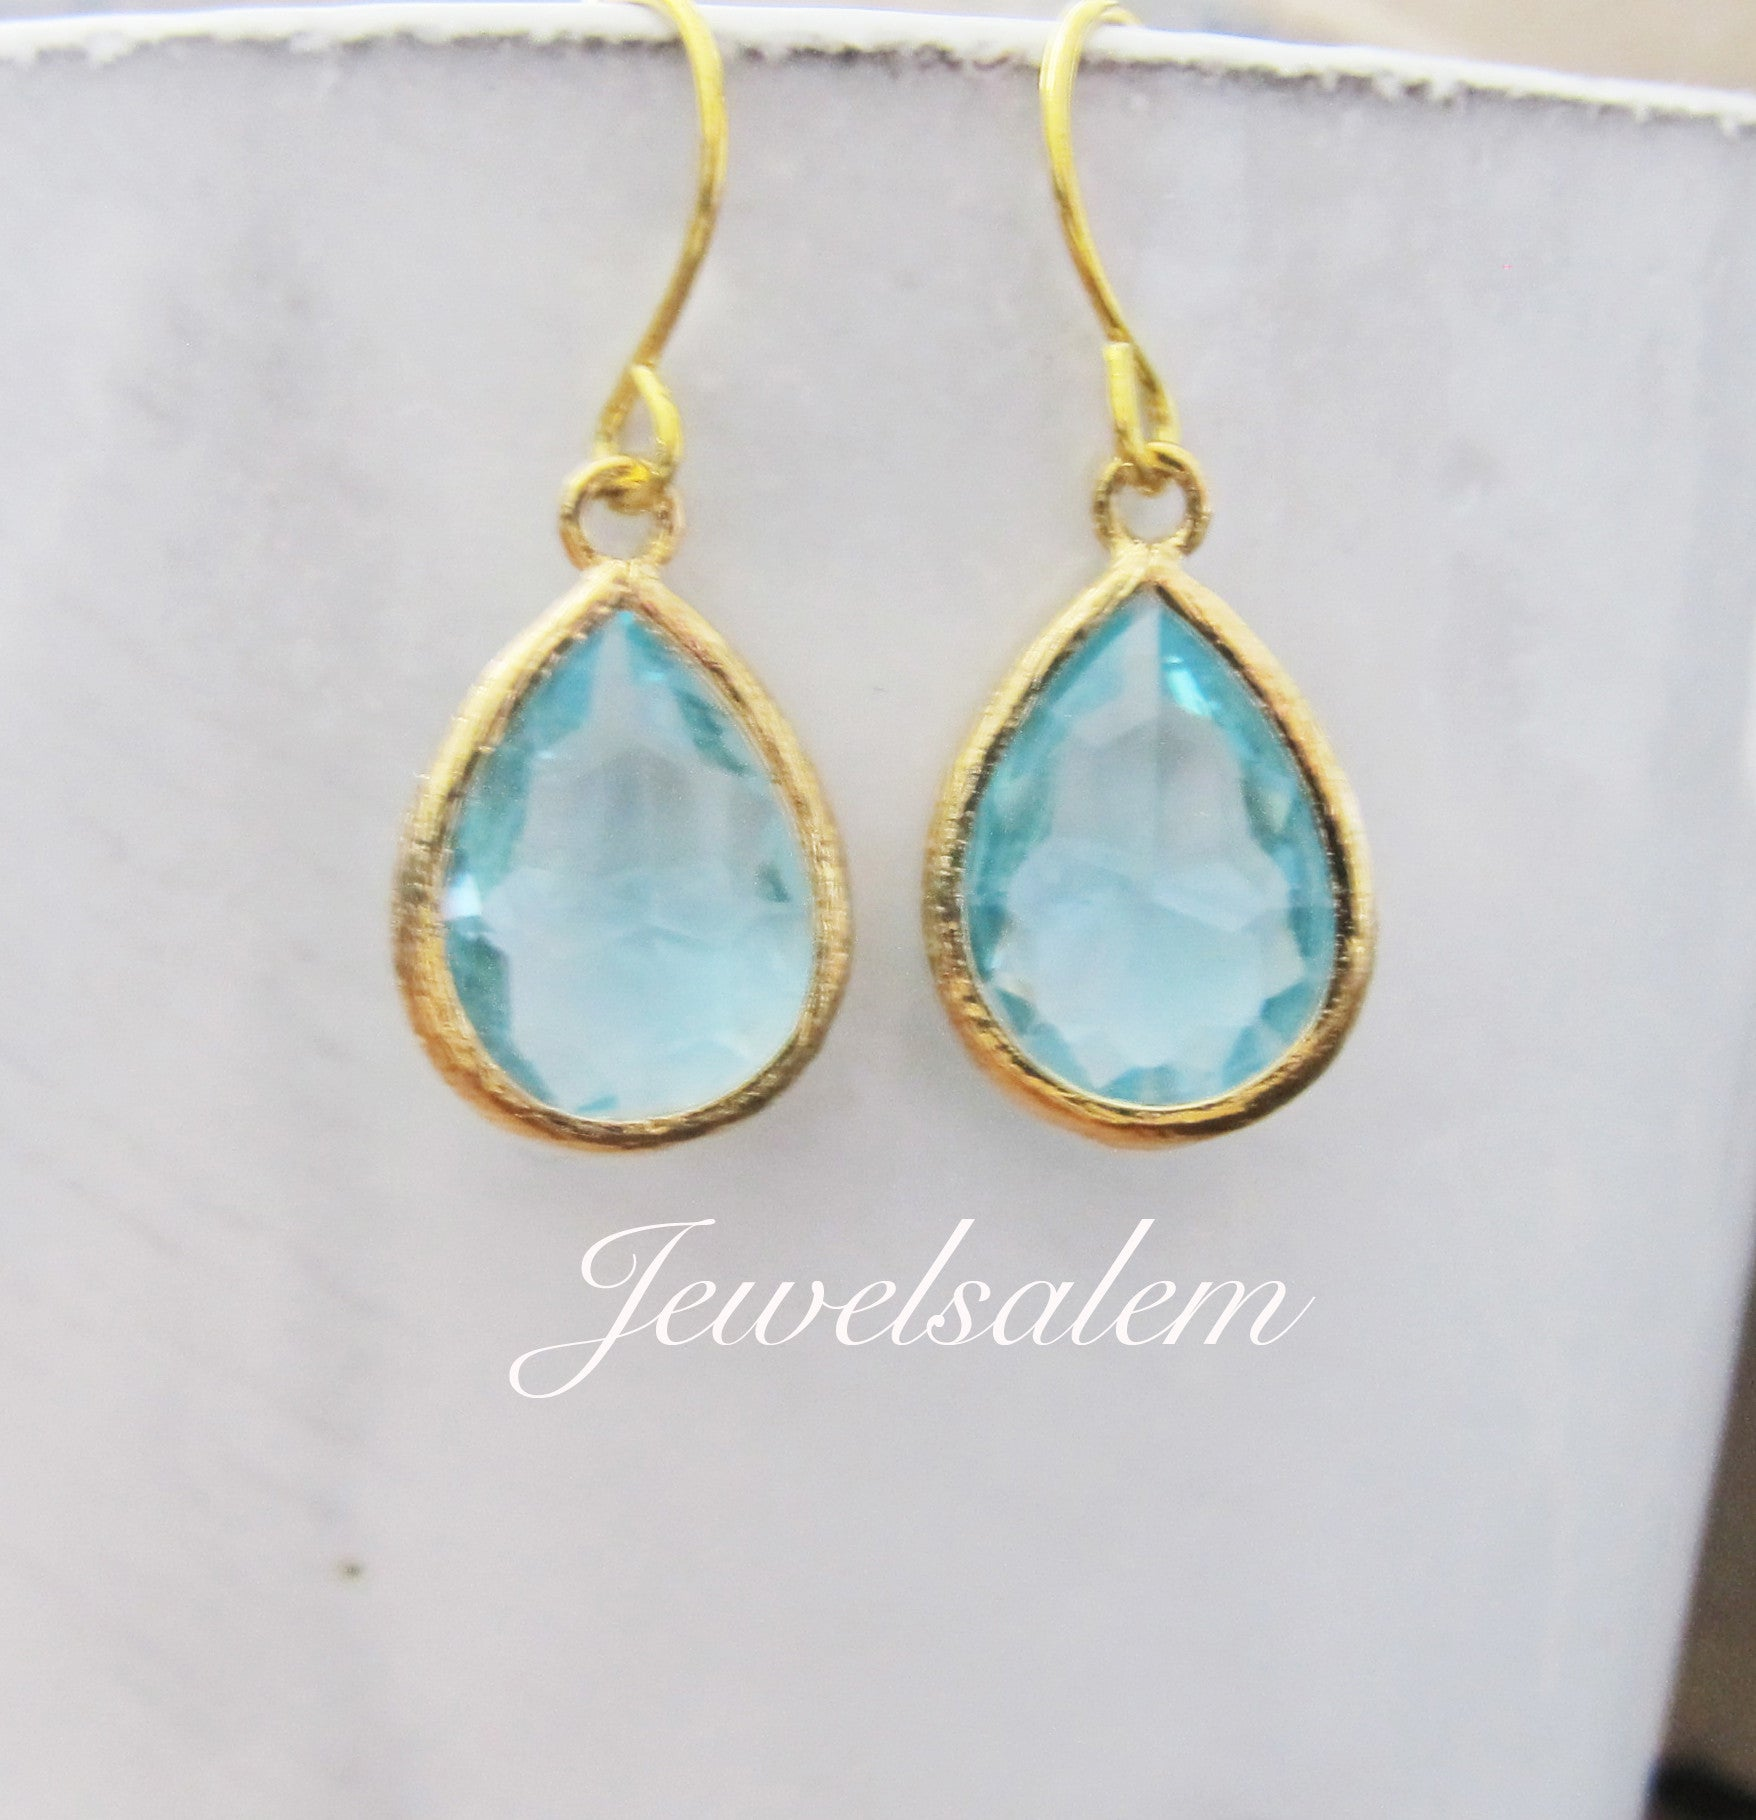 Aquamarine Earrings in Silver or Gold - Jewelsalem